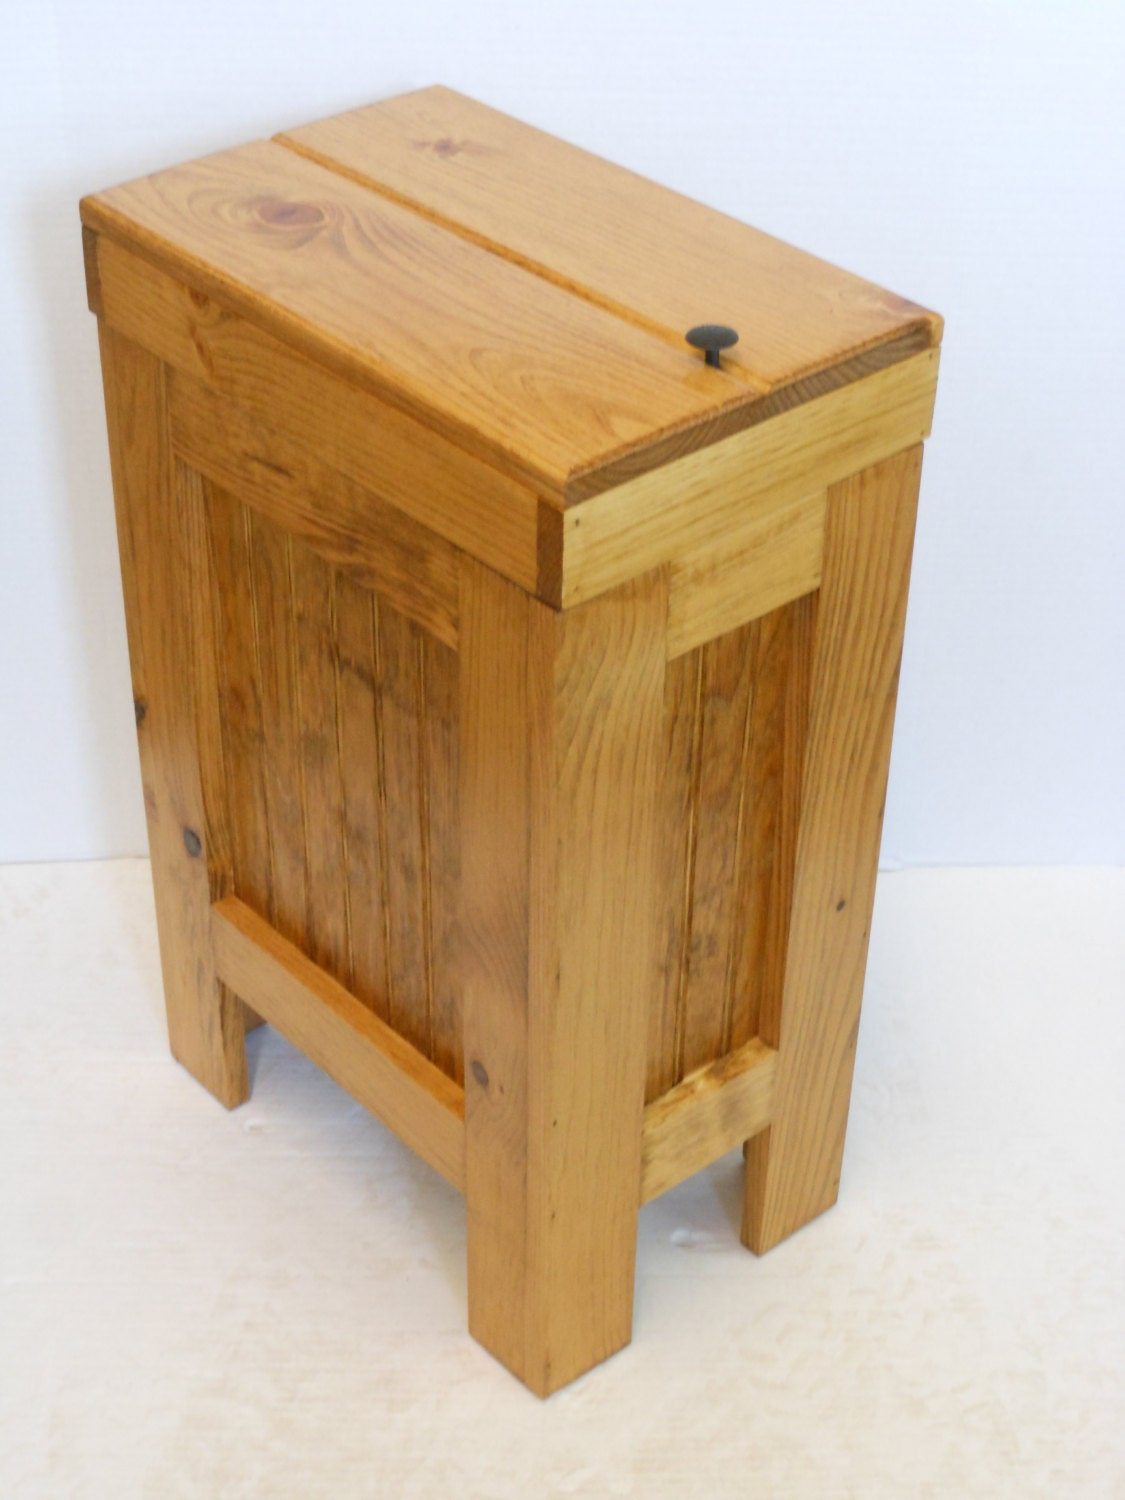 wood wooden kitchen garbage can trash bin by buffalowoodshop